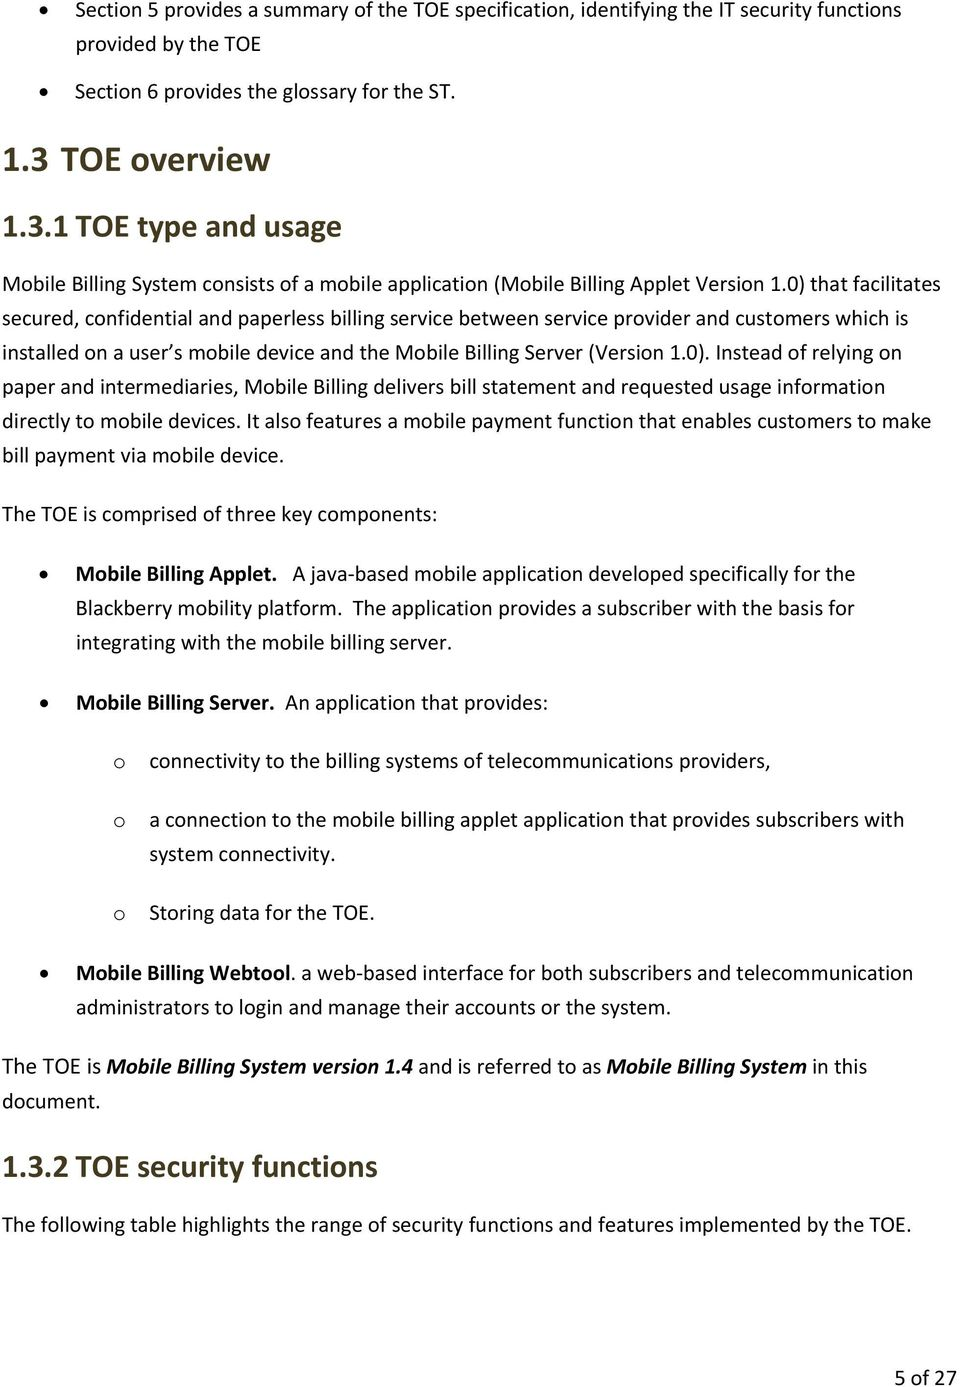 0) that facilitates secured, confidential and paperless billing service between service provider and customers which is installed on a user s mobile device and the Mobile Billing Server (Version 1.0). Instead of relying on paper and intermediaries, Mobile Billing delivers bill statement and requested usage information directly to mobile devices.